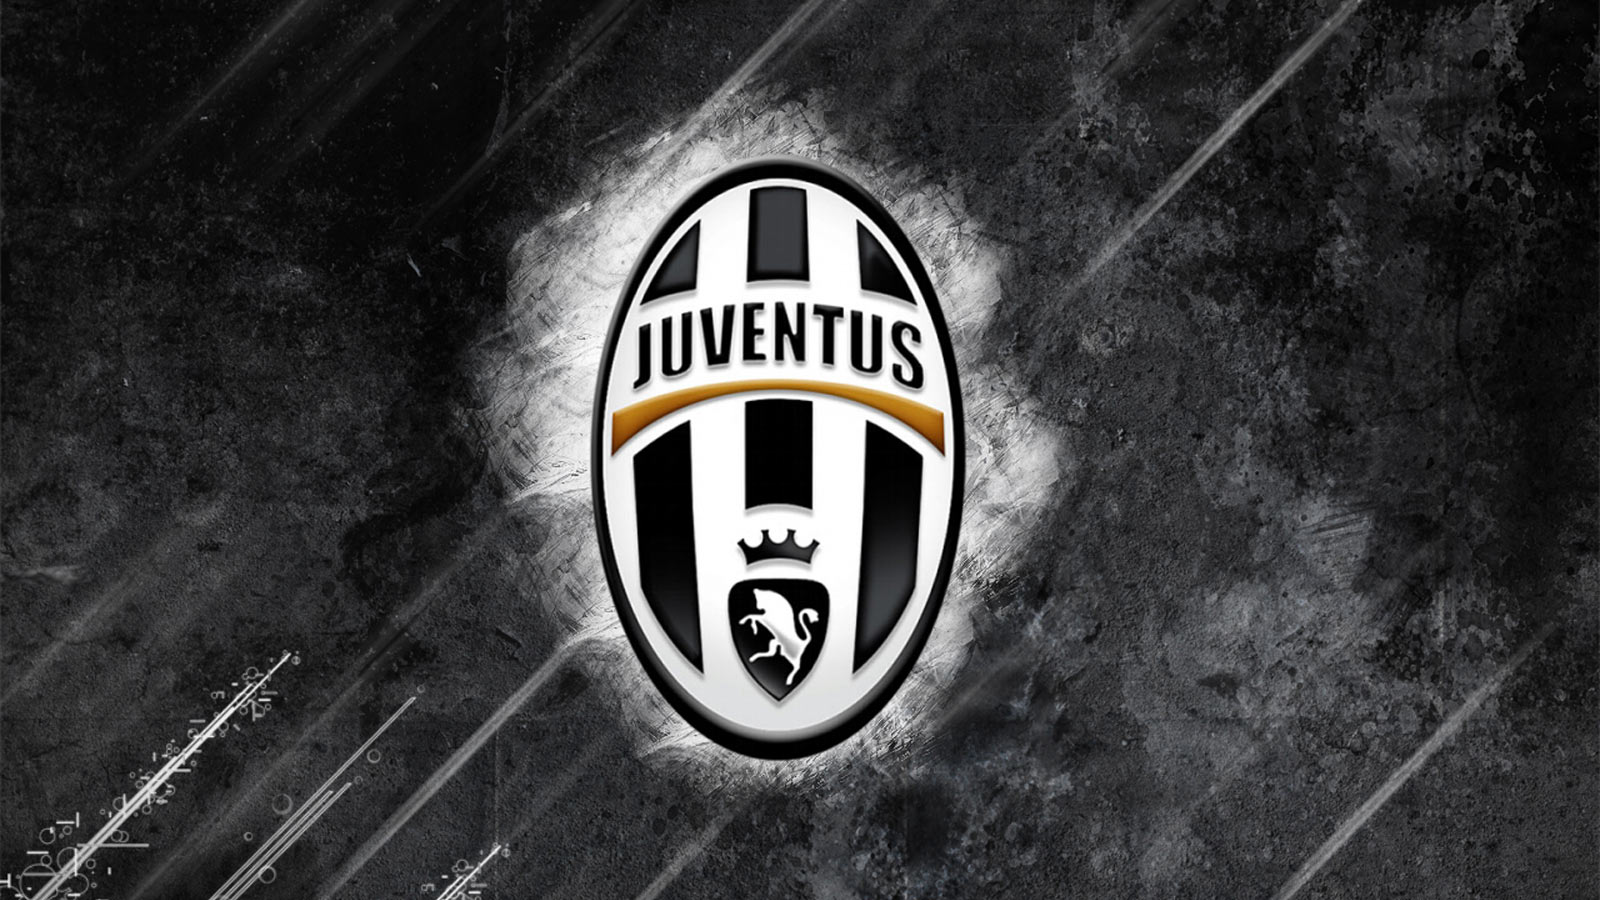 Must see Wallpaper Logo Juventus - latest?cb\u003d20130526114925  Best Photo Reference_947526.jpg/revision/latest?cb\u003d20130526114925